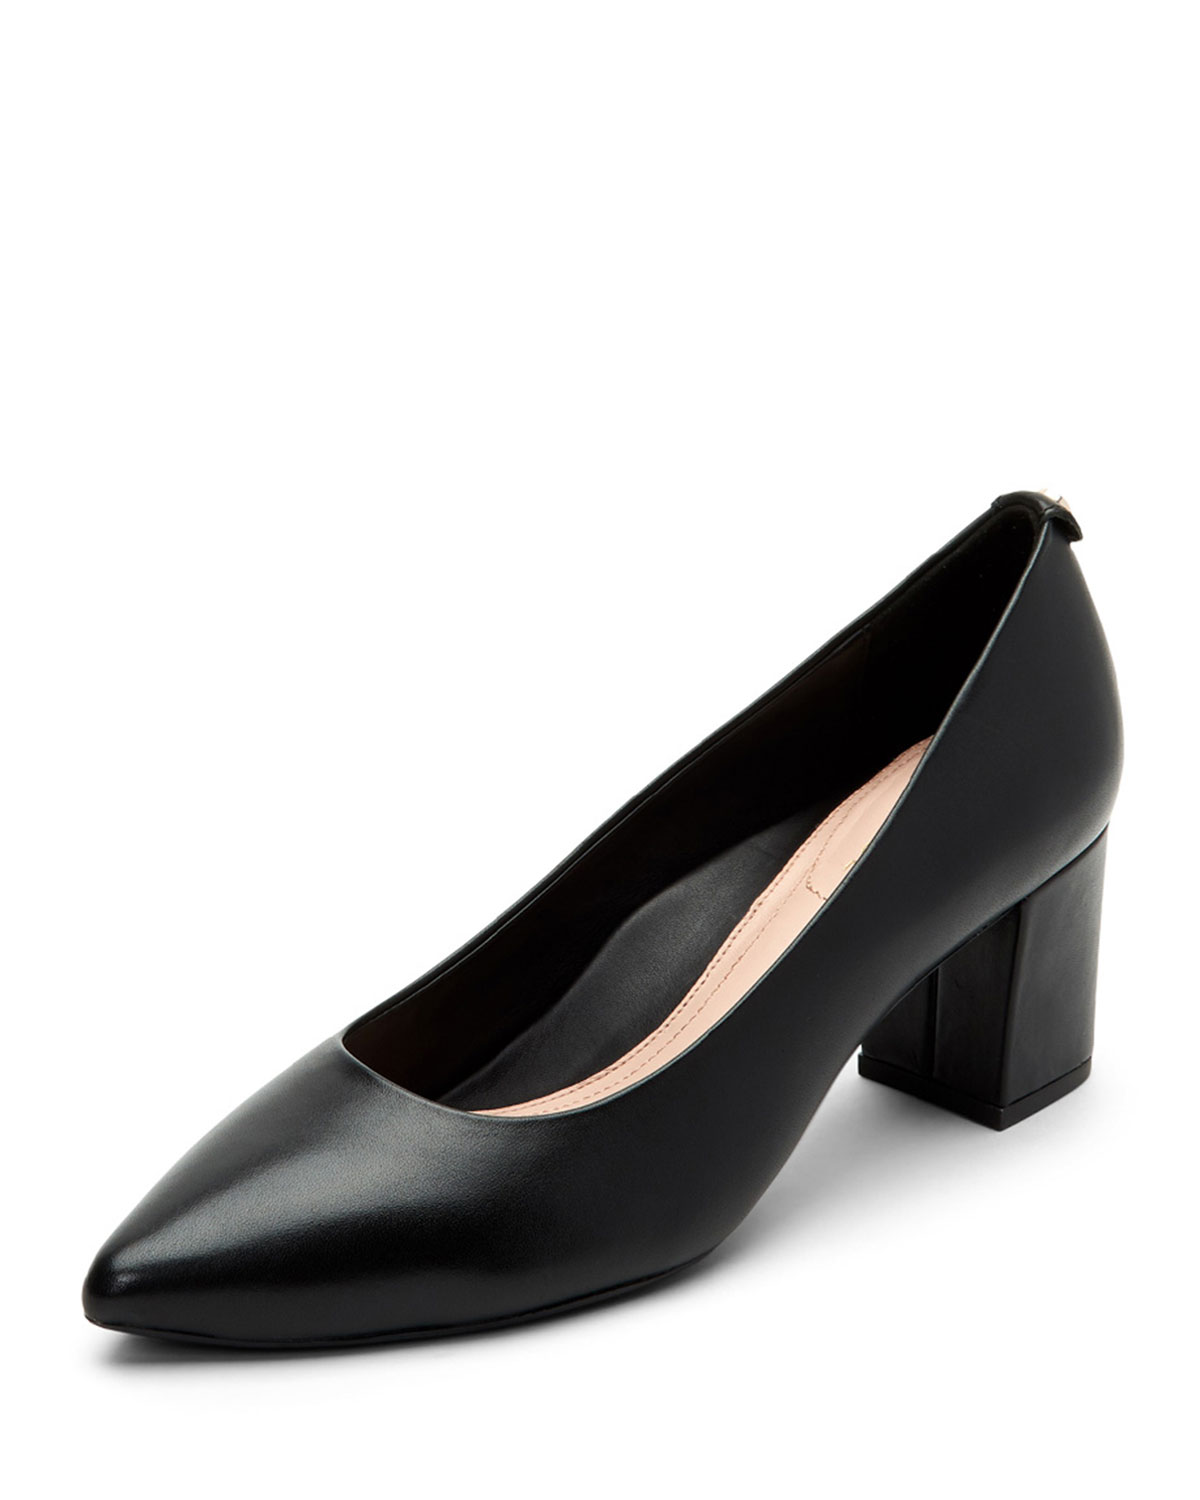 d6aead5df7118 Taryn Rose Madline Leather Pointed Pumps